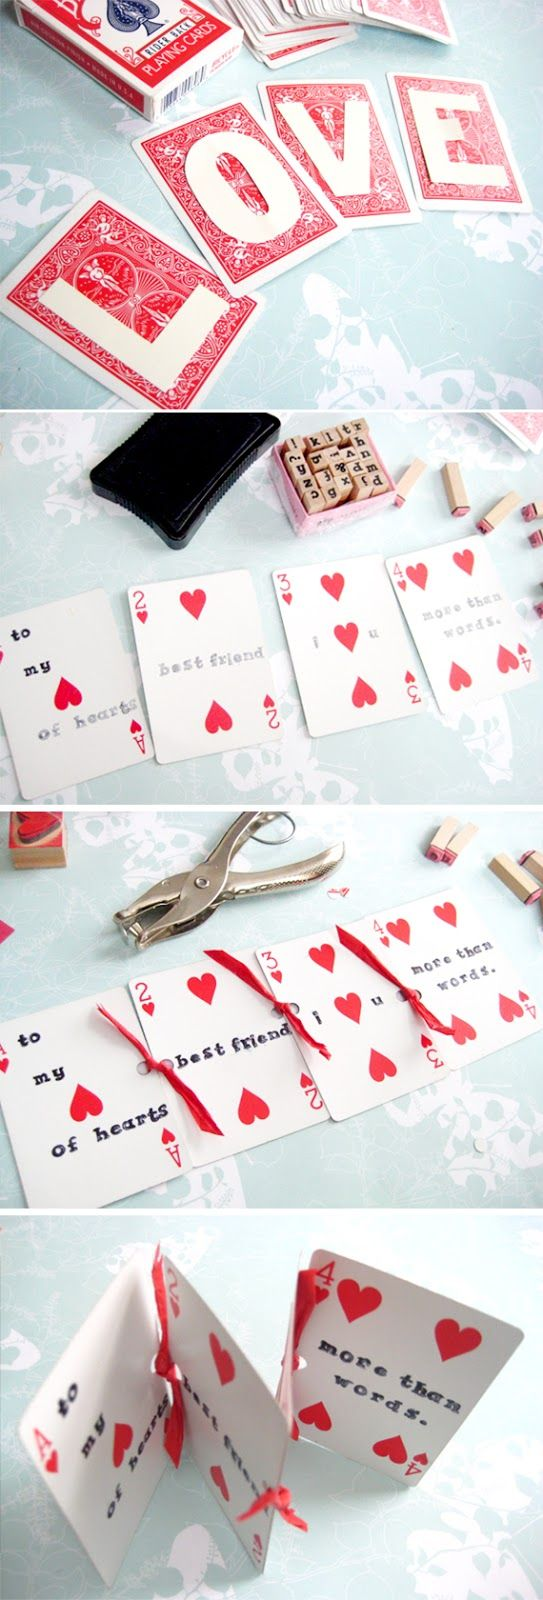 Diy playing card message valentines playing cards messages and diy playing card message valentines in honor of design m4hsunfo